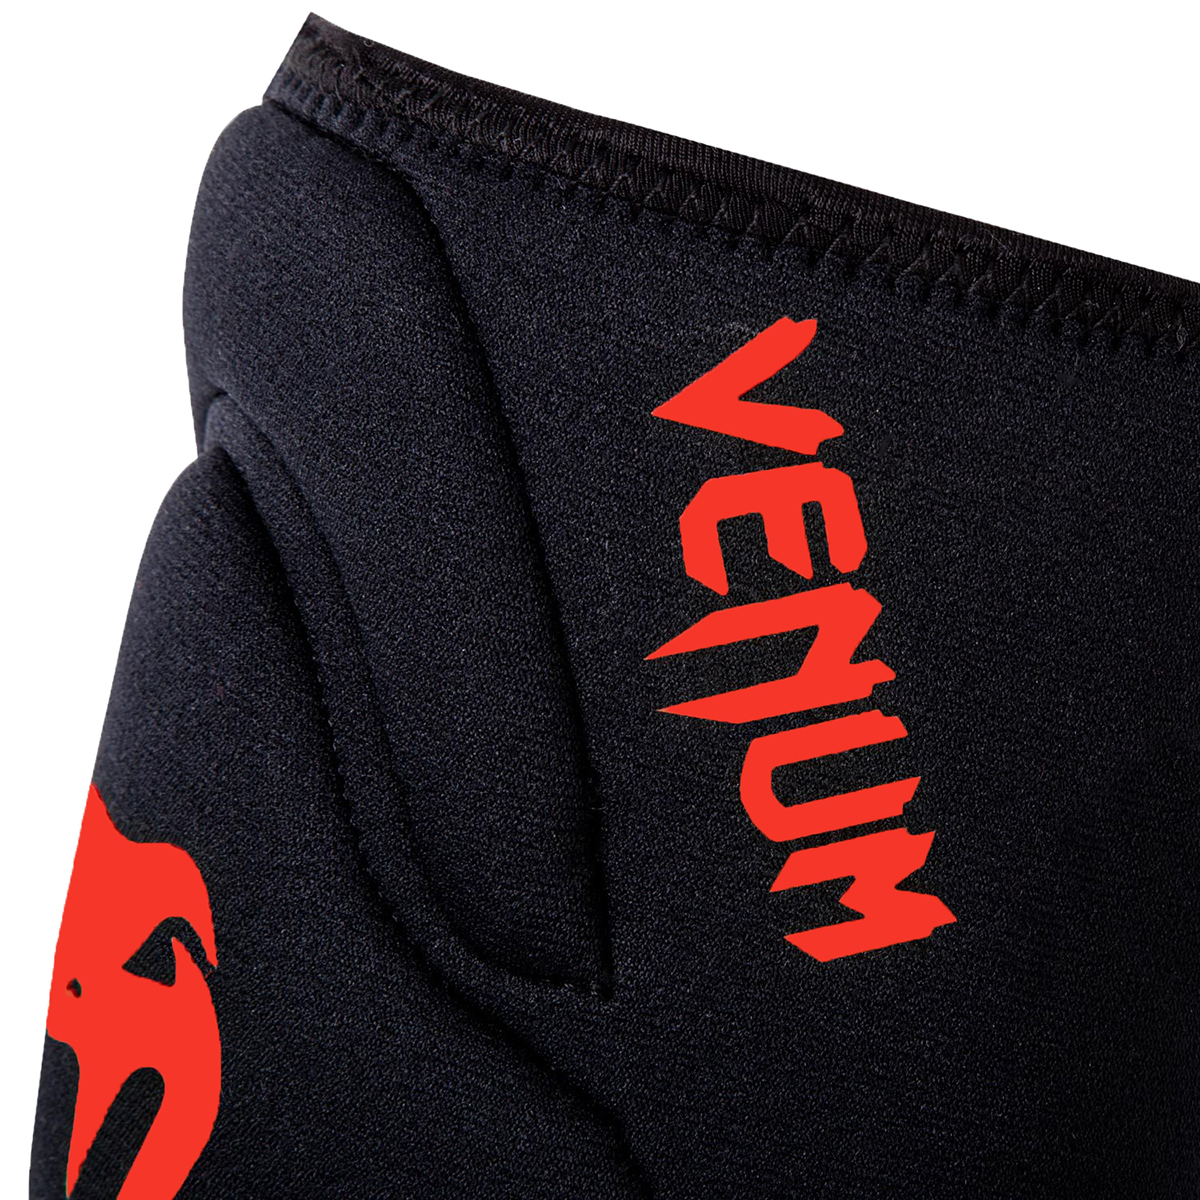 thumbnail 10 - Venum-Kontact-Gel-Shock-System-Protective-MMA-Training-Knee-Pads